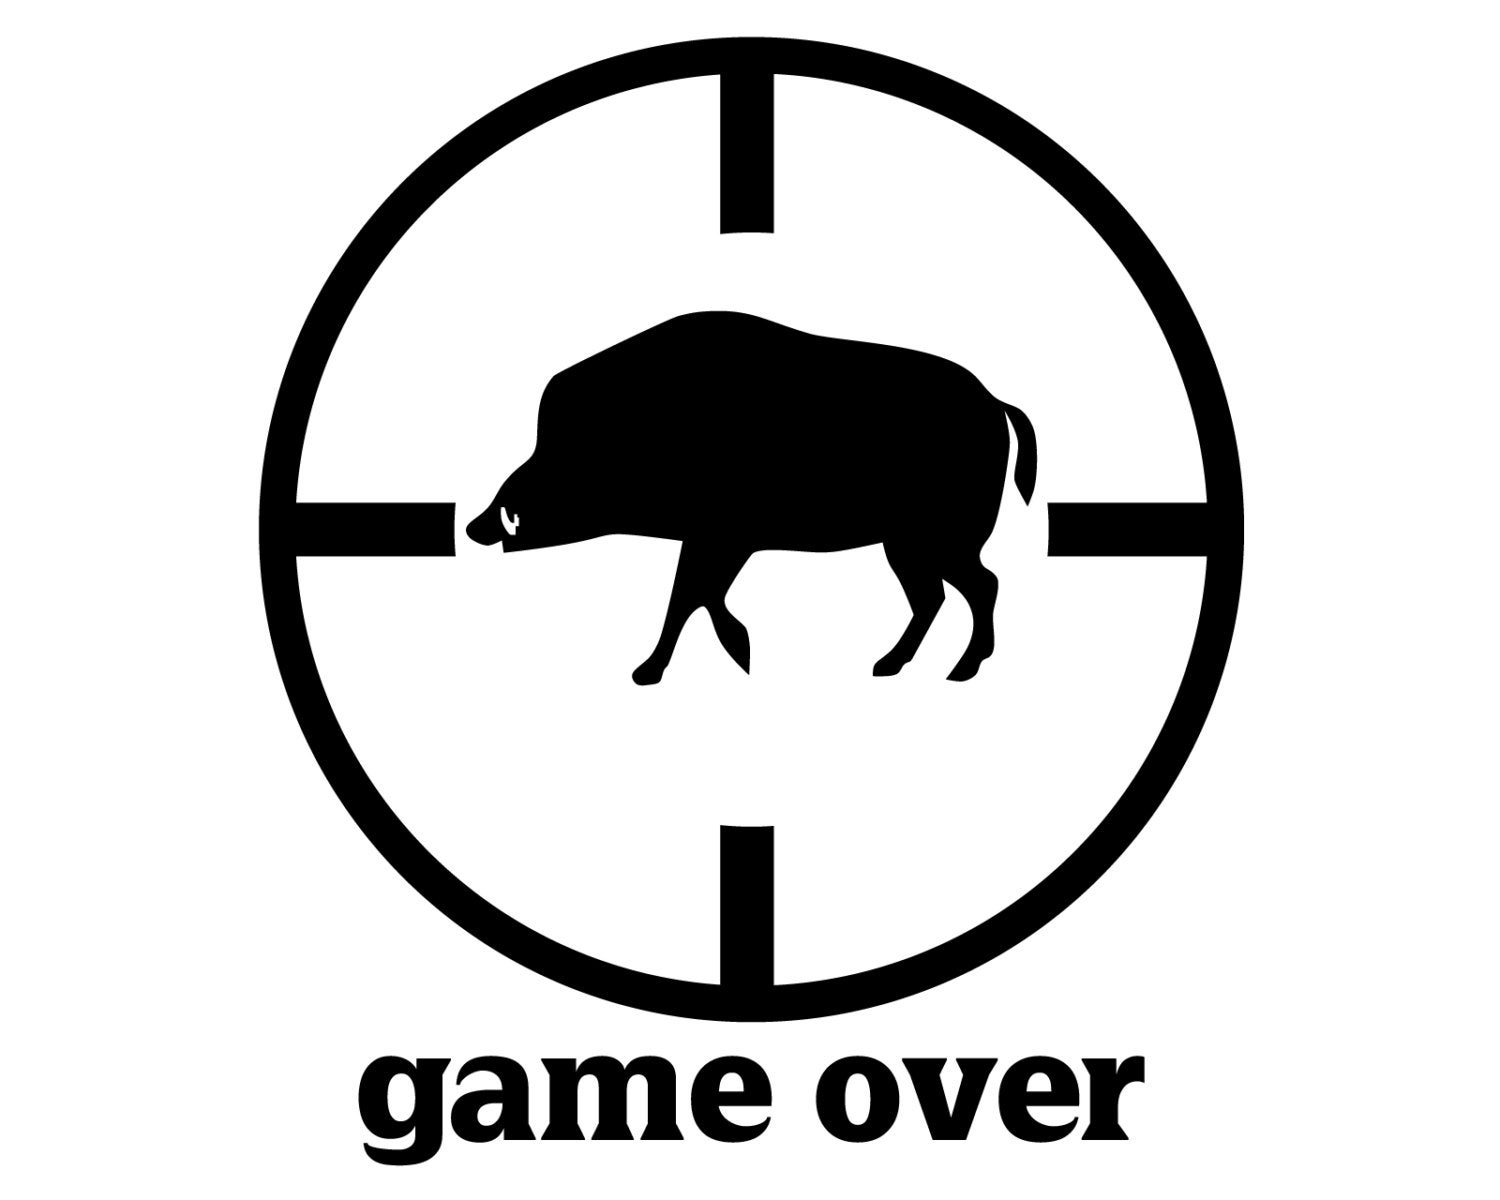 Wild boar hunter decal hog hunting sticker hog hunter game over decal